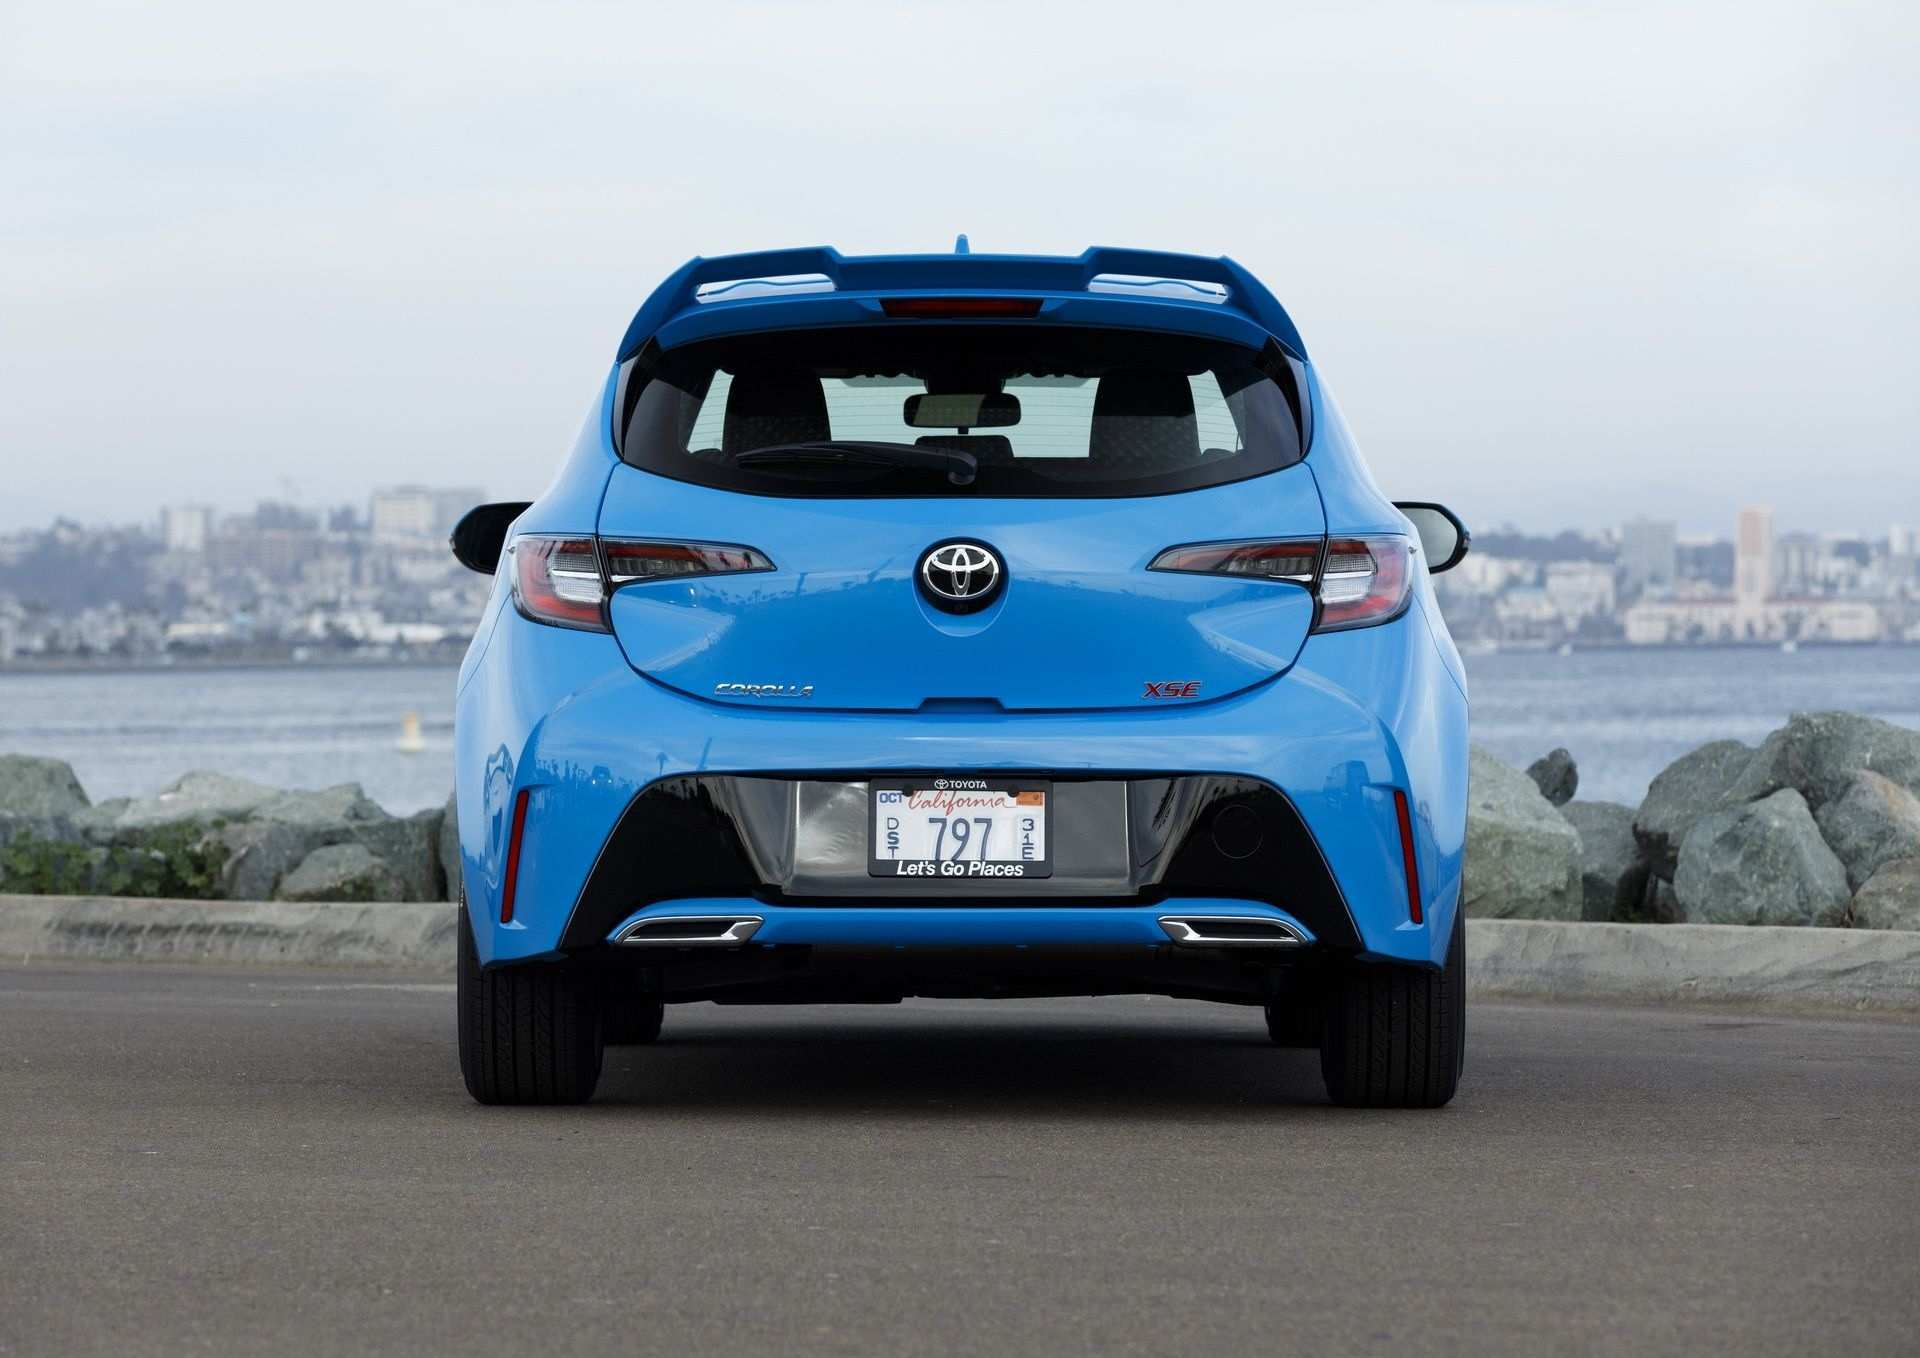 69 All New 2020 Toyota Yaris Hatchback Images for 2020 Toyota Yaris Hatchback